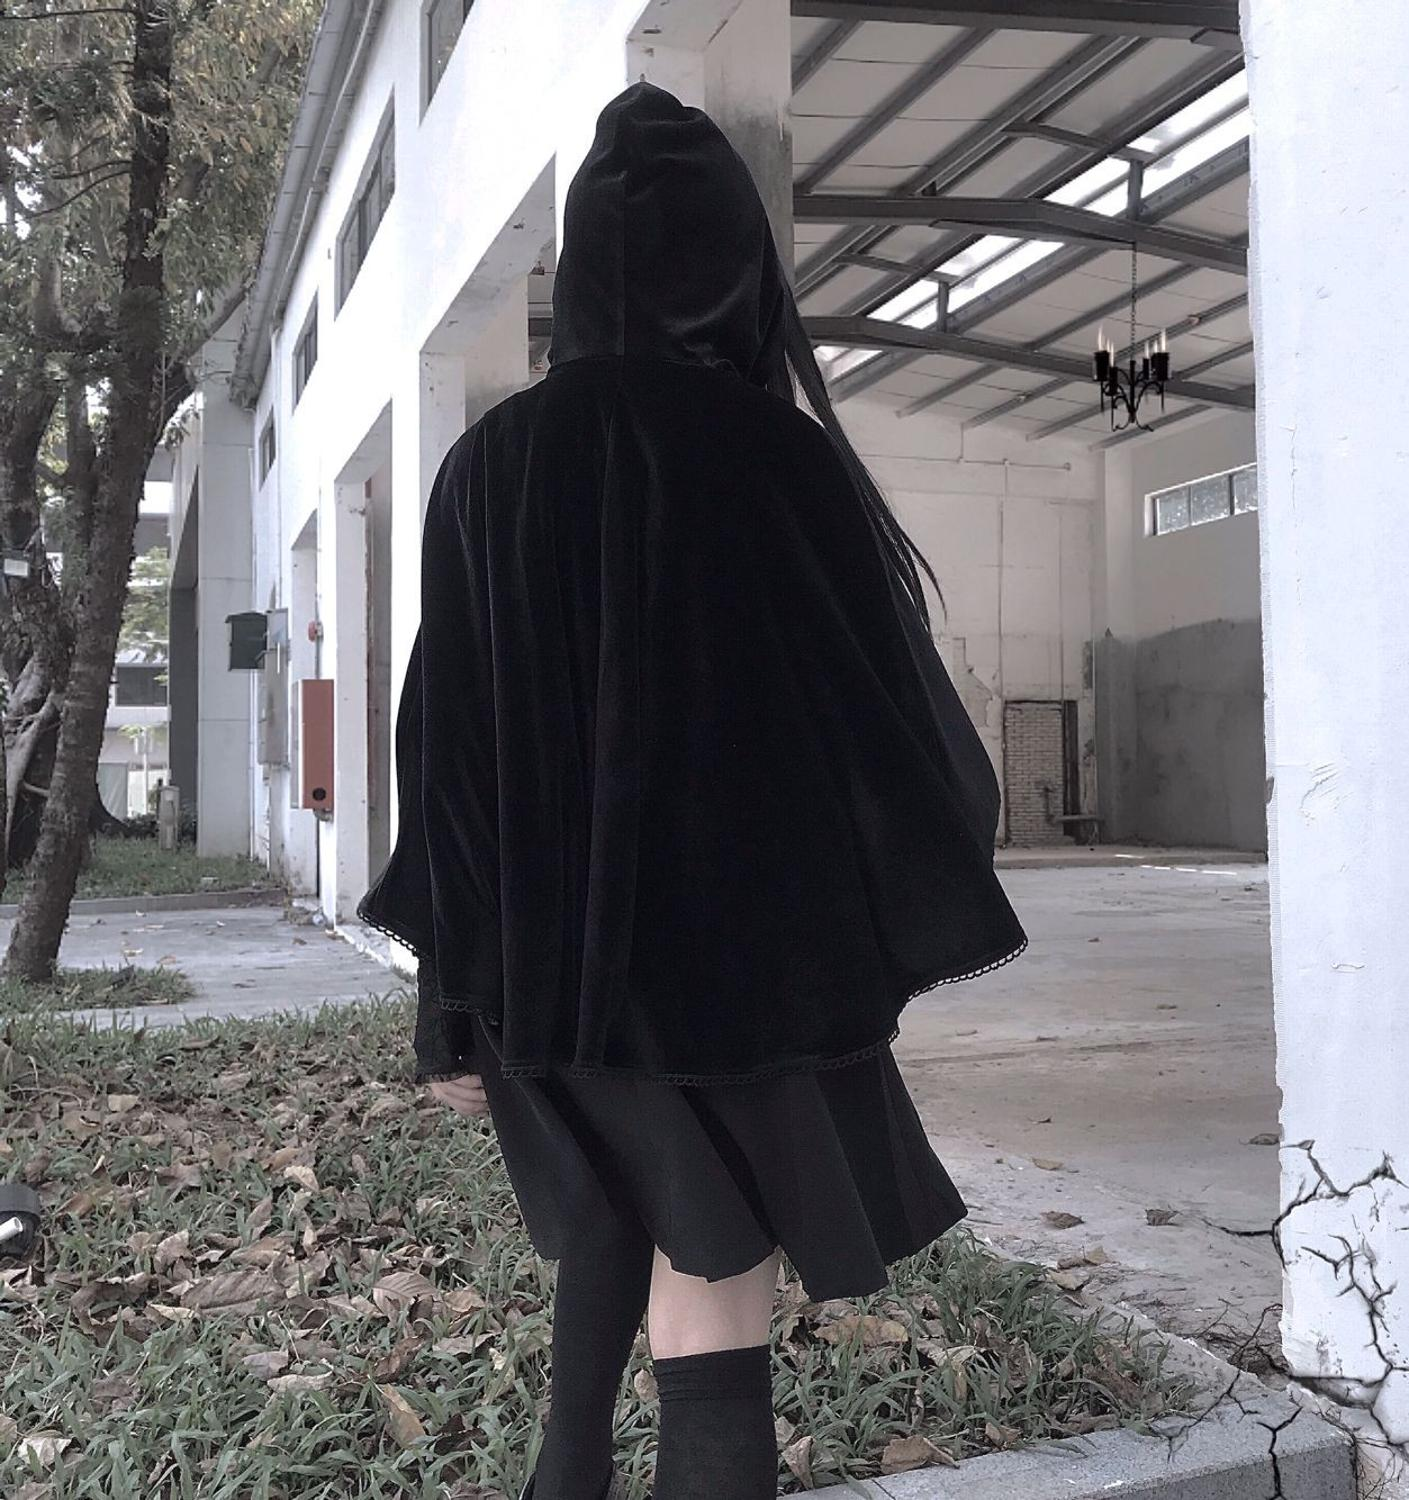 Gothic Black Vintage Women Hooded Cape Goth Lace Velvet Short Cloak Halloween Cosplay Dark Female Waterfall Short Poncho Coat